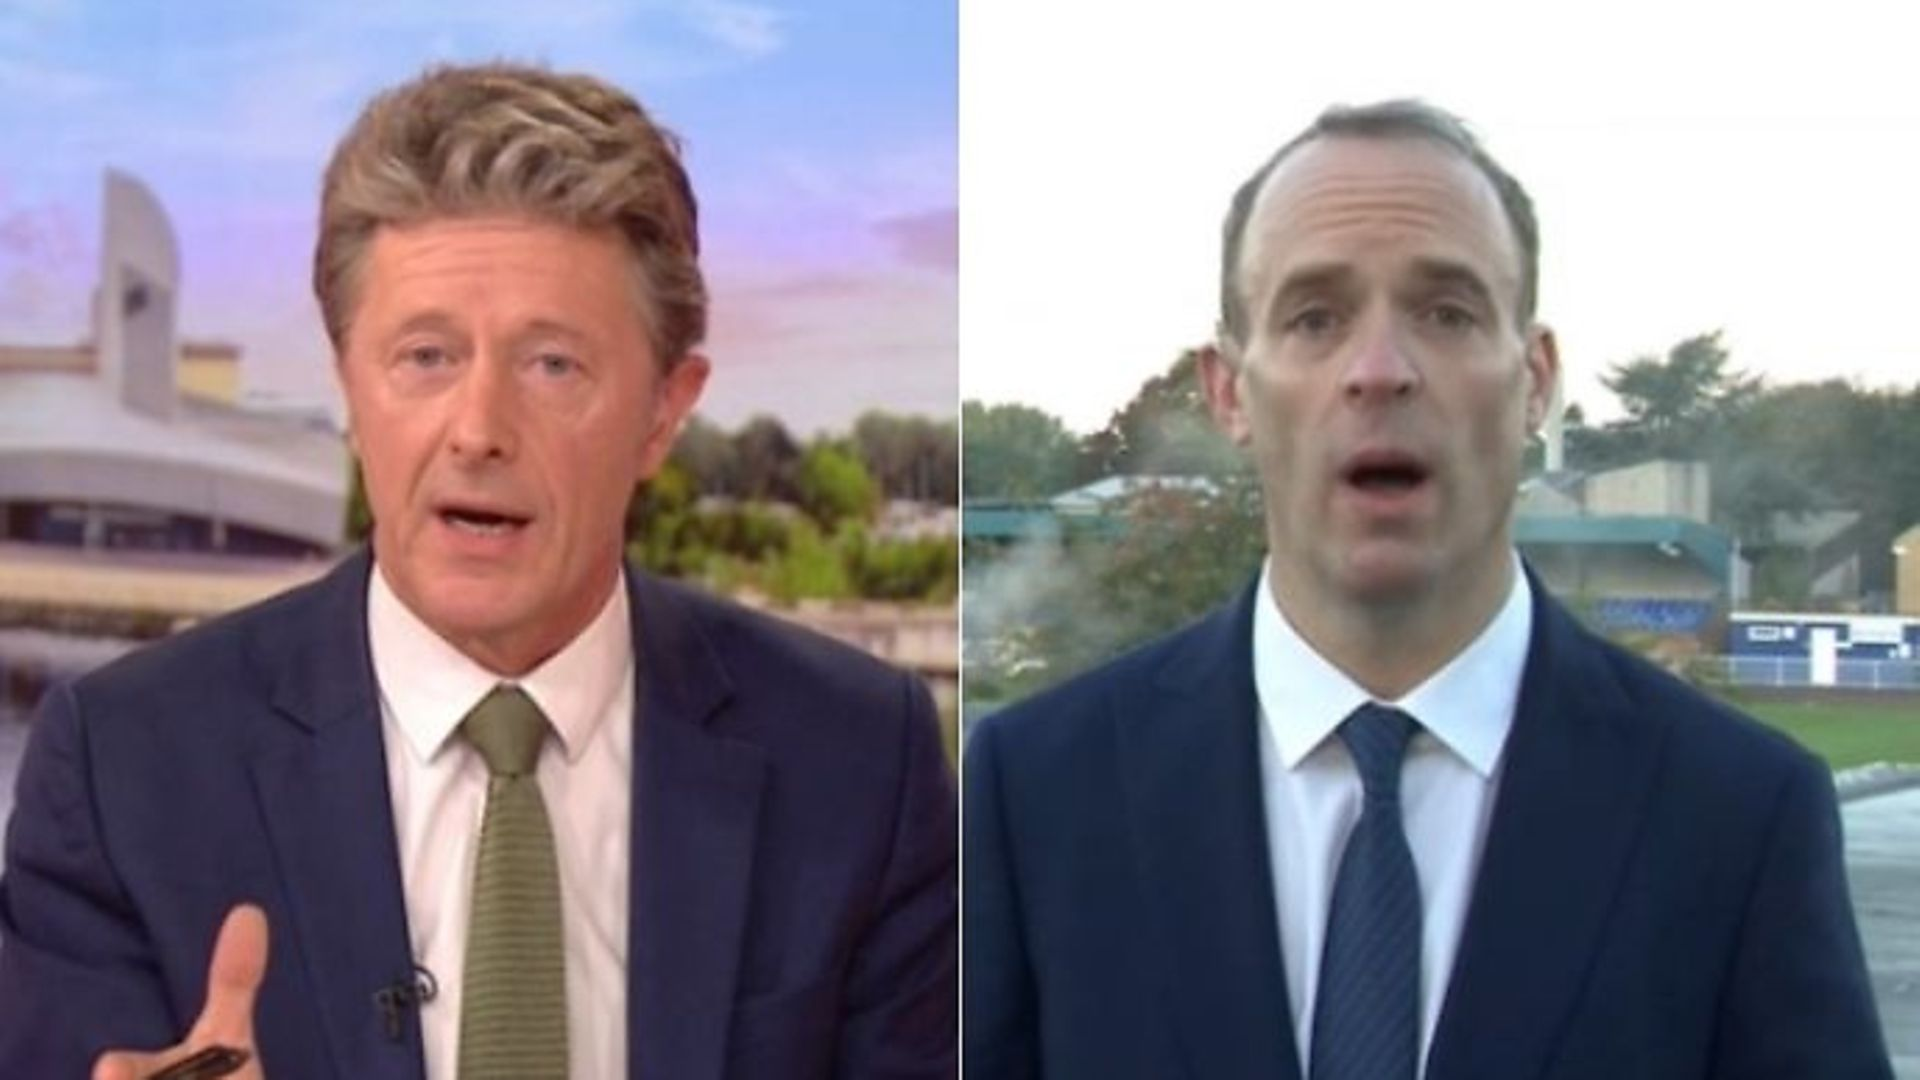 Dominic Raab clashes with Charlie Stayt on BBC Breakfast - Credit: BBC